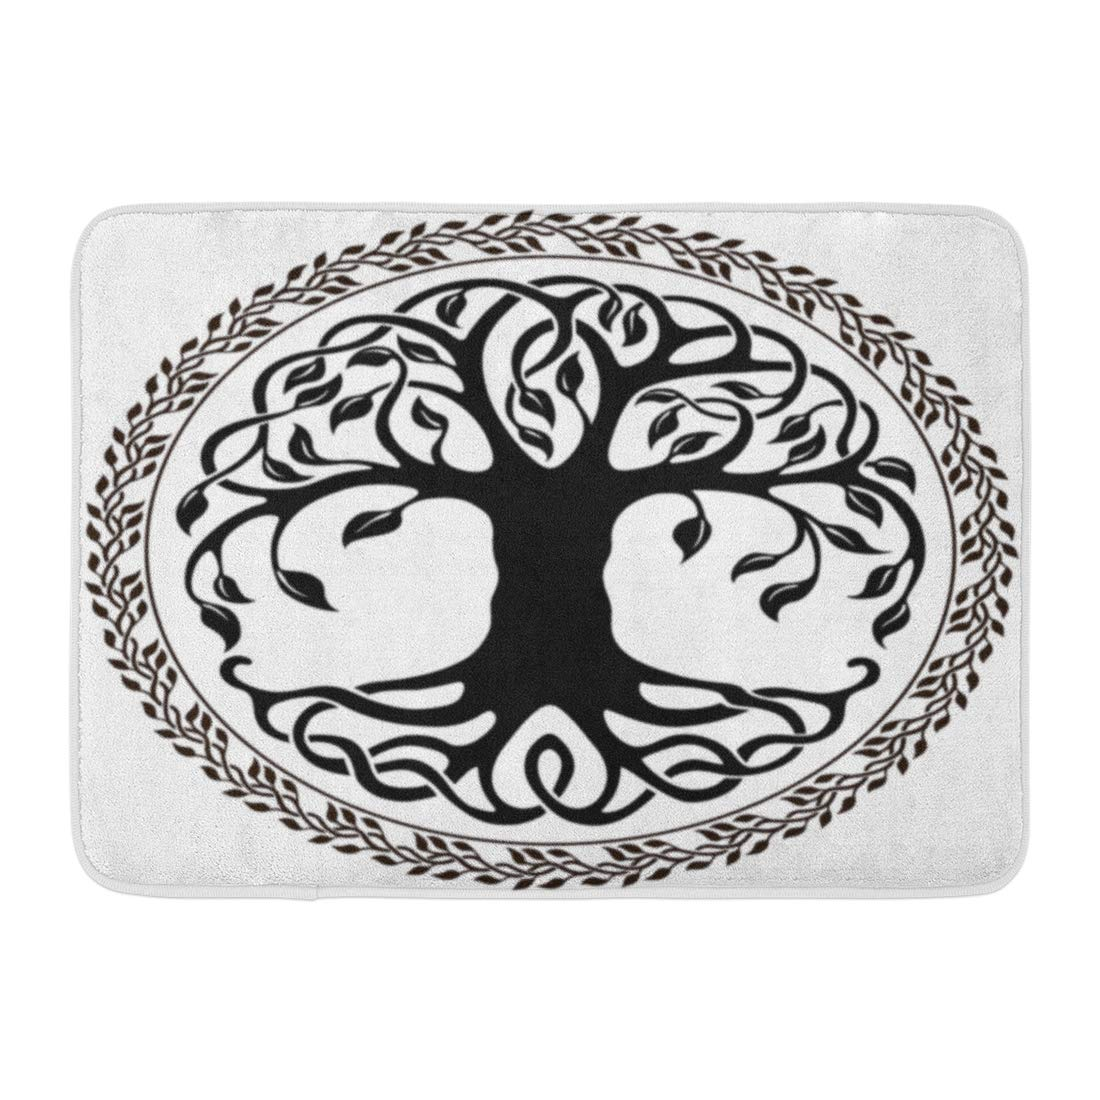 GODPOK Leaves Black Branches Celtic Tree of Life with Floral Round Border White Knot Nature Rug Doormat Bath Mat 23.6x15.7 inch